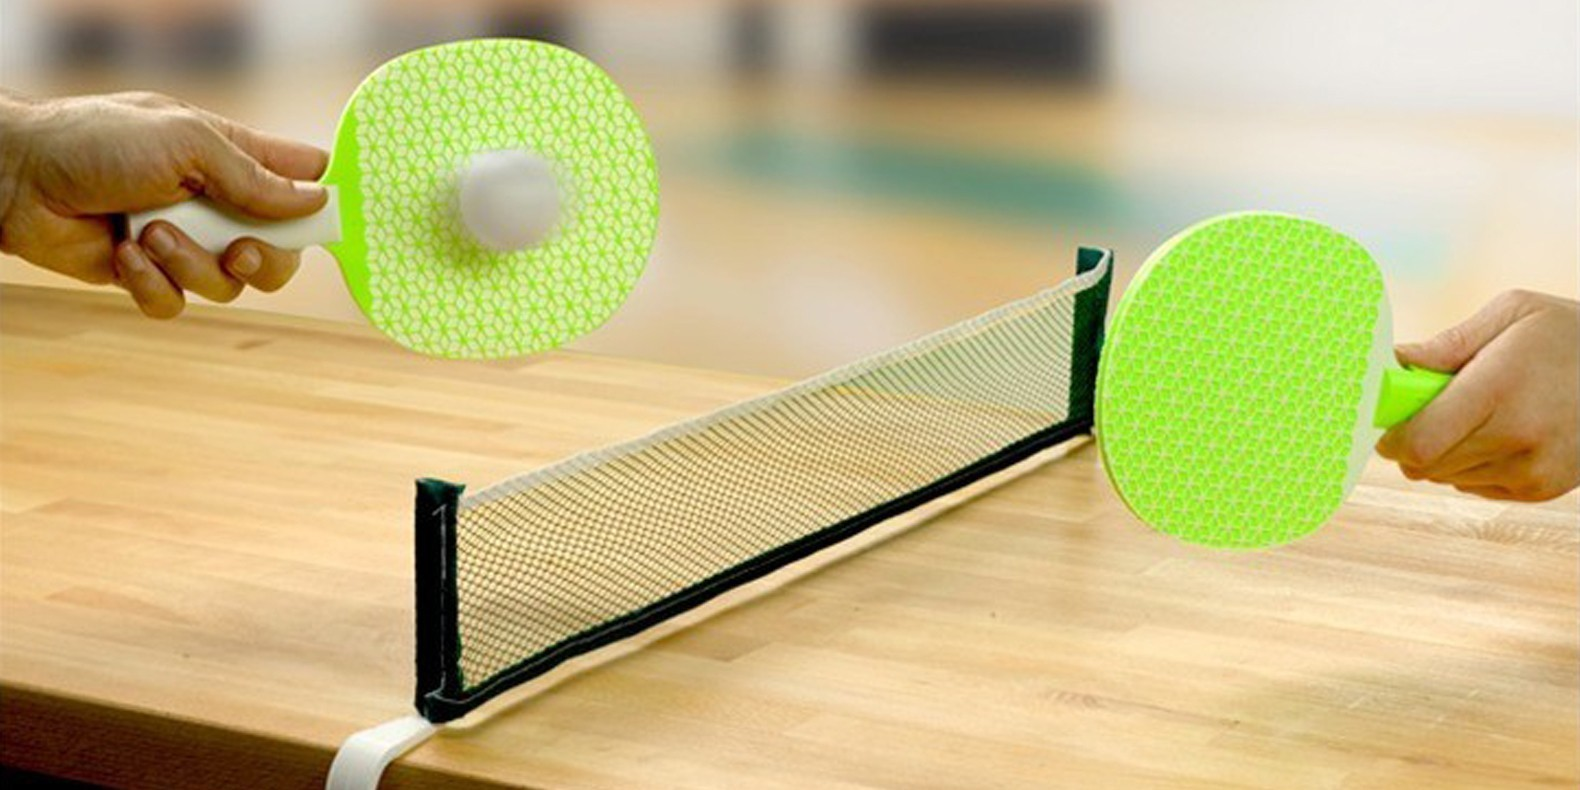 Here is a selection of the best sport supplies 3D models to make with a 3D printer